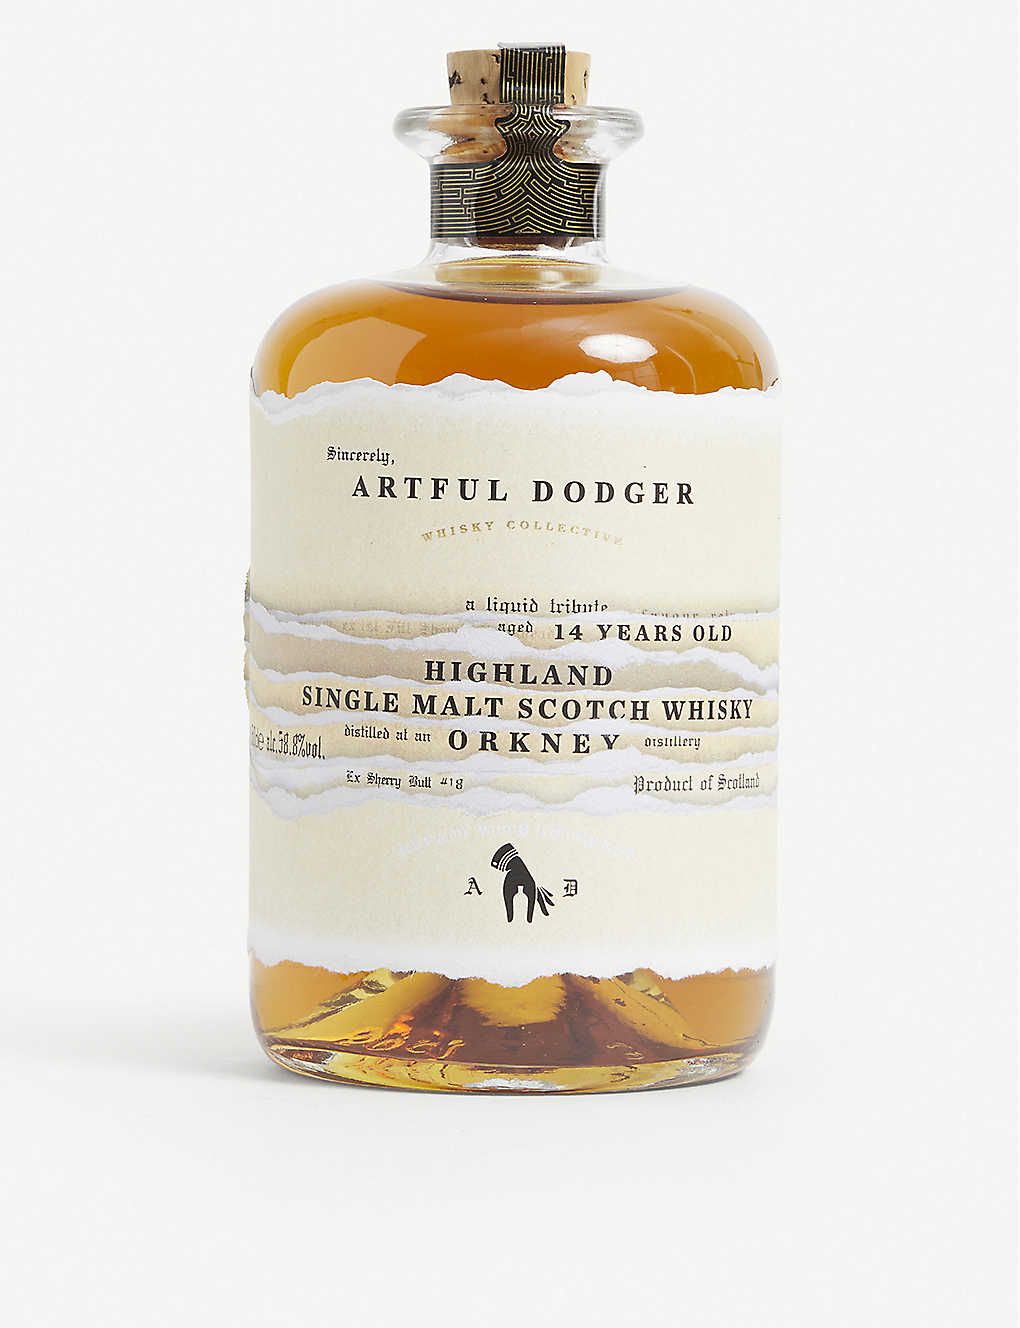 WHISKY AND BOURBON: Artful Dodger 14-year-old Orkney Highland single malt Scotch whisky 500ml